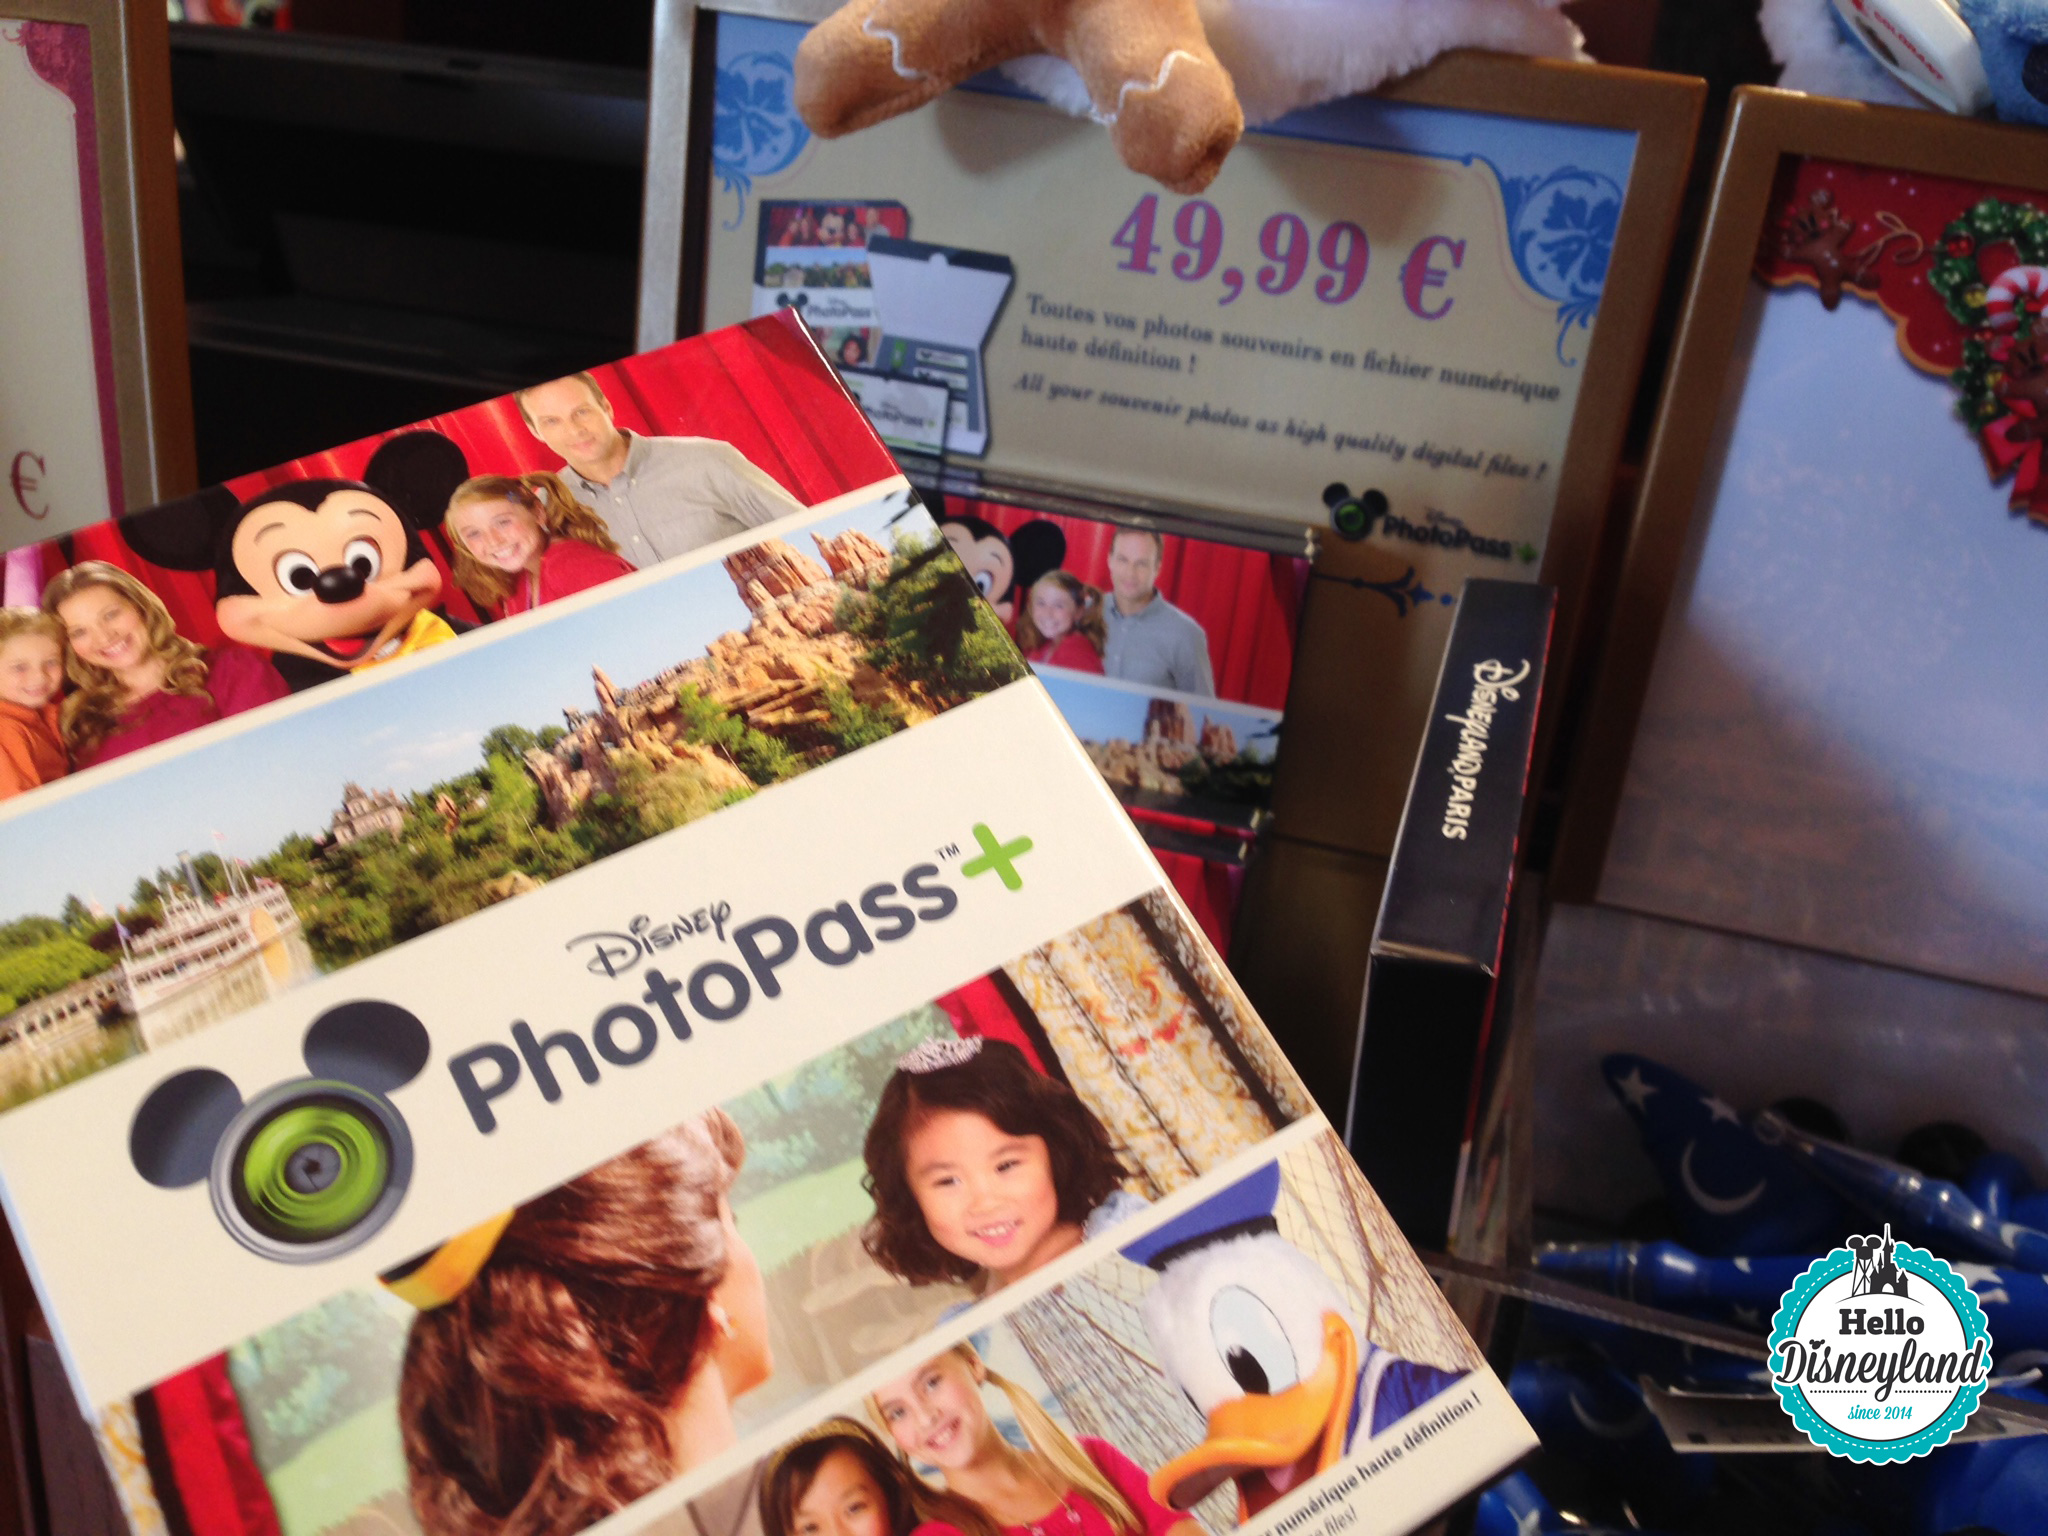 PhotoPass + Disneyland PAris Prix